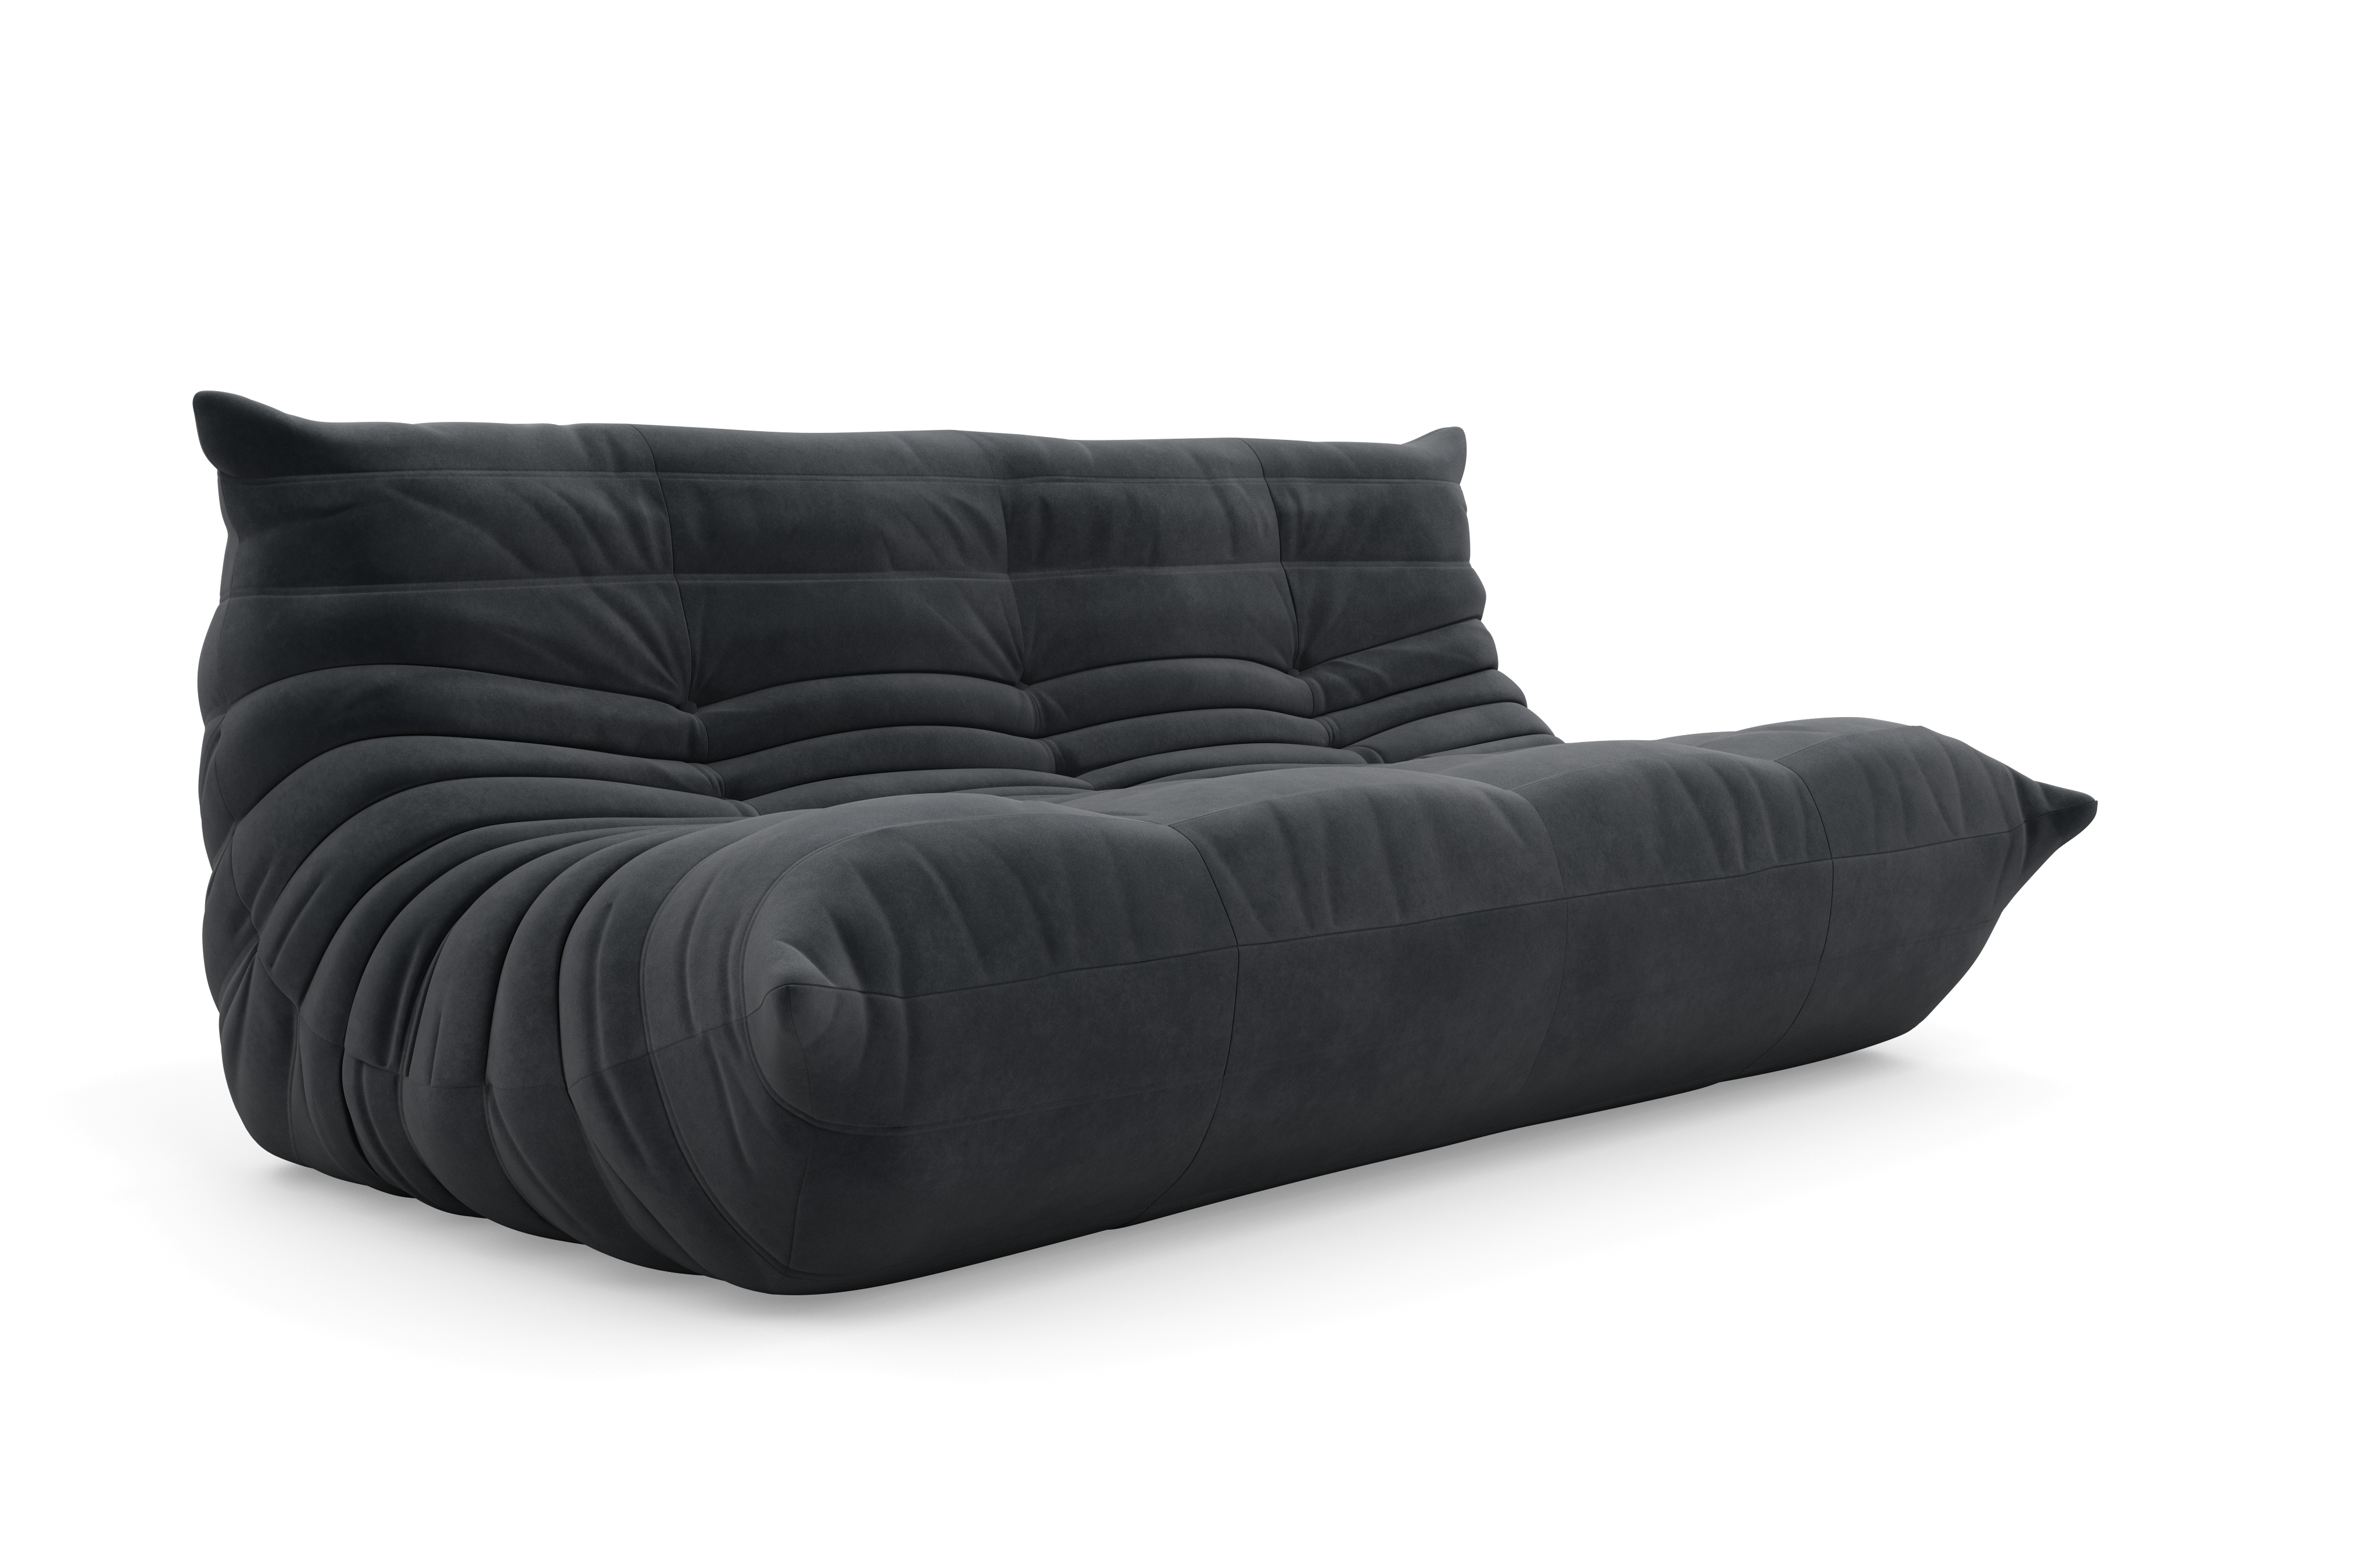 togo canap s designer michel ducaroy ligne roset. Black Bedroom Furniture Sets. Home Design Ideas